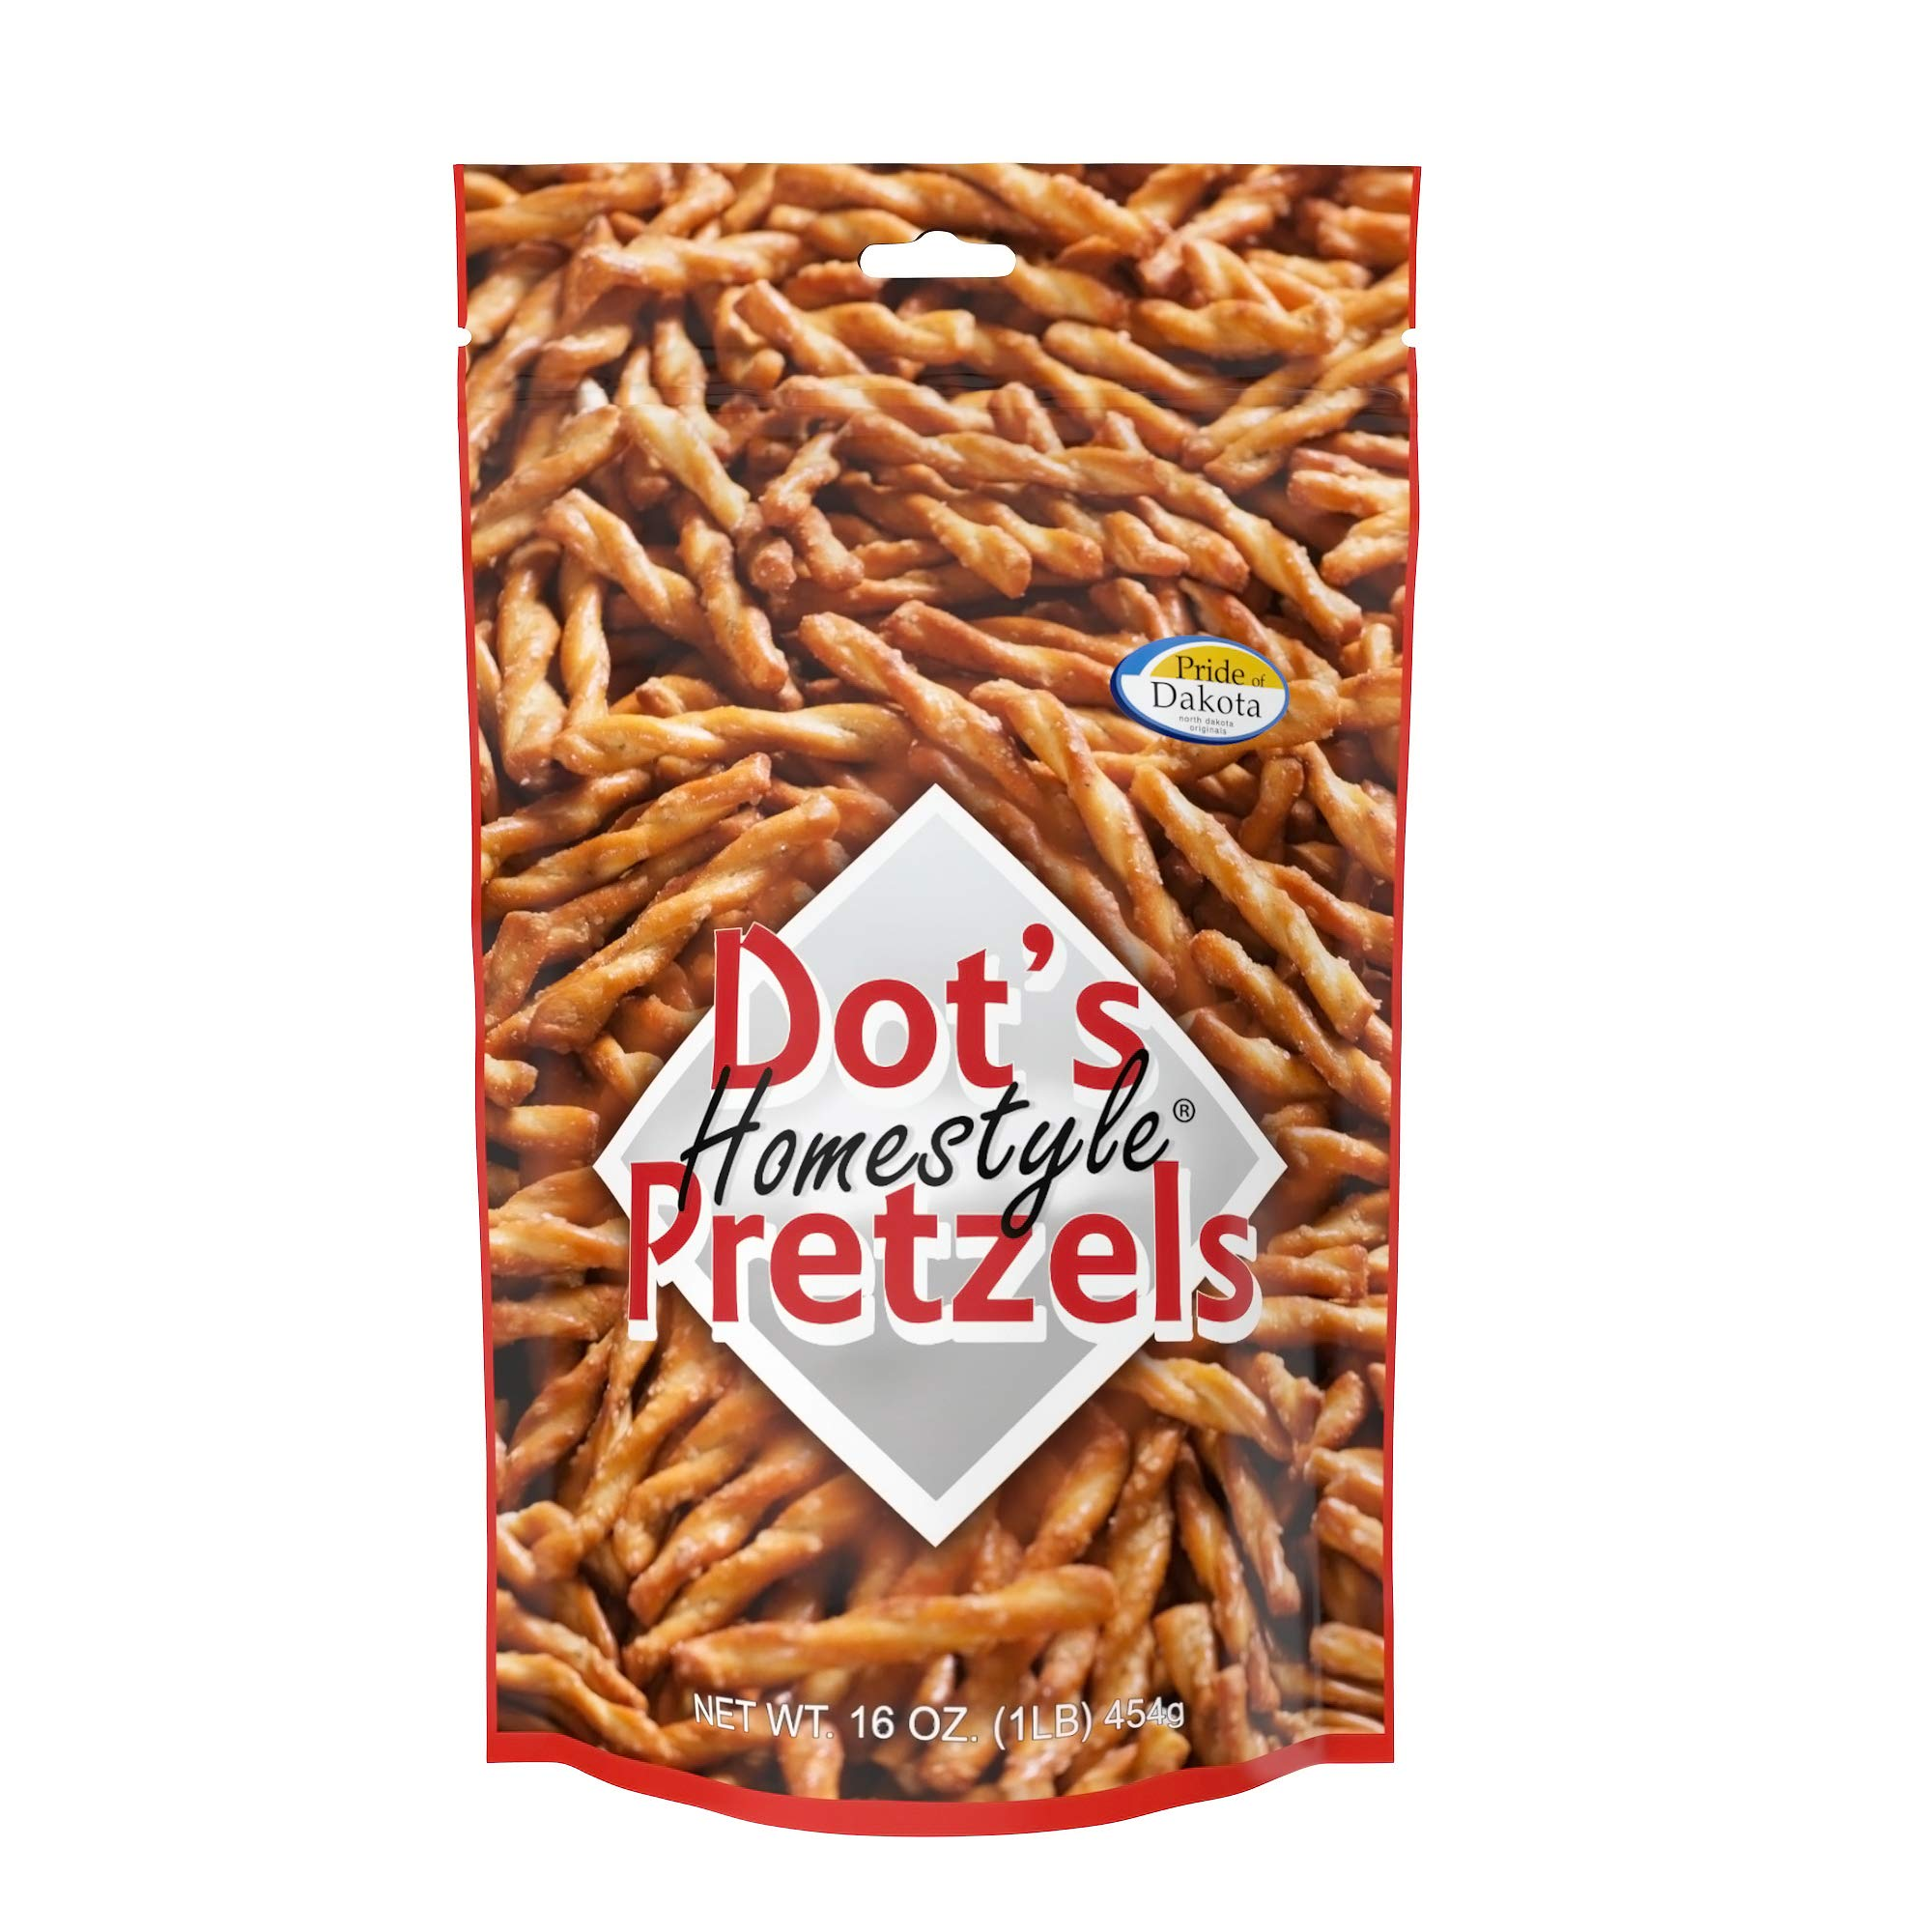 Dot's Homestyle Pretzels 1 lb. Bag (5 Bags) 16 oz. Seasoned Pretzel Snack Sticks (Packaging May Vary) by Dot's Homestyle Pretzels (Image #1)